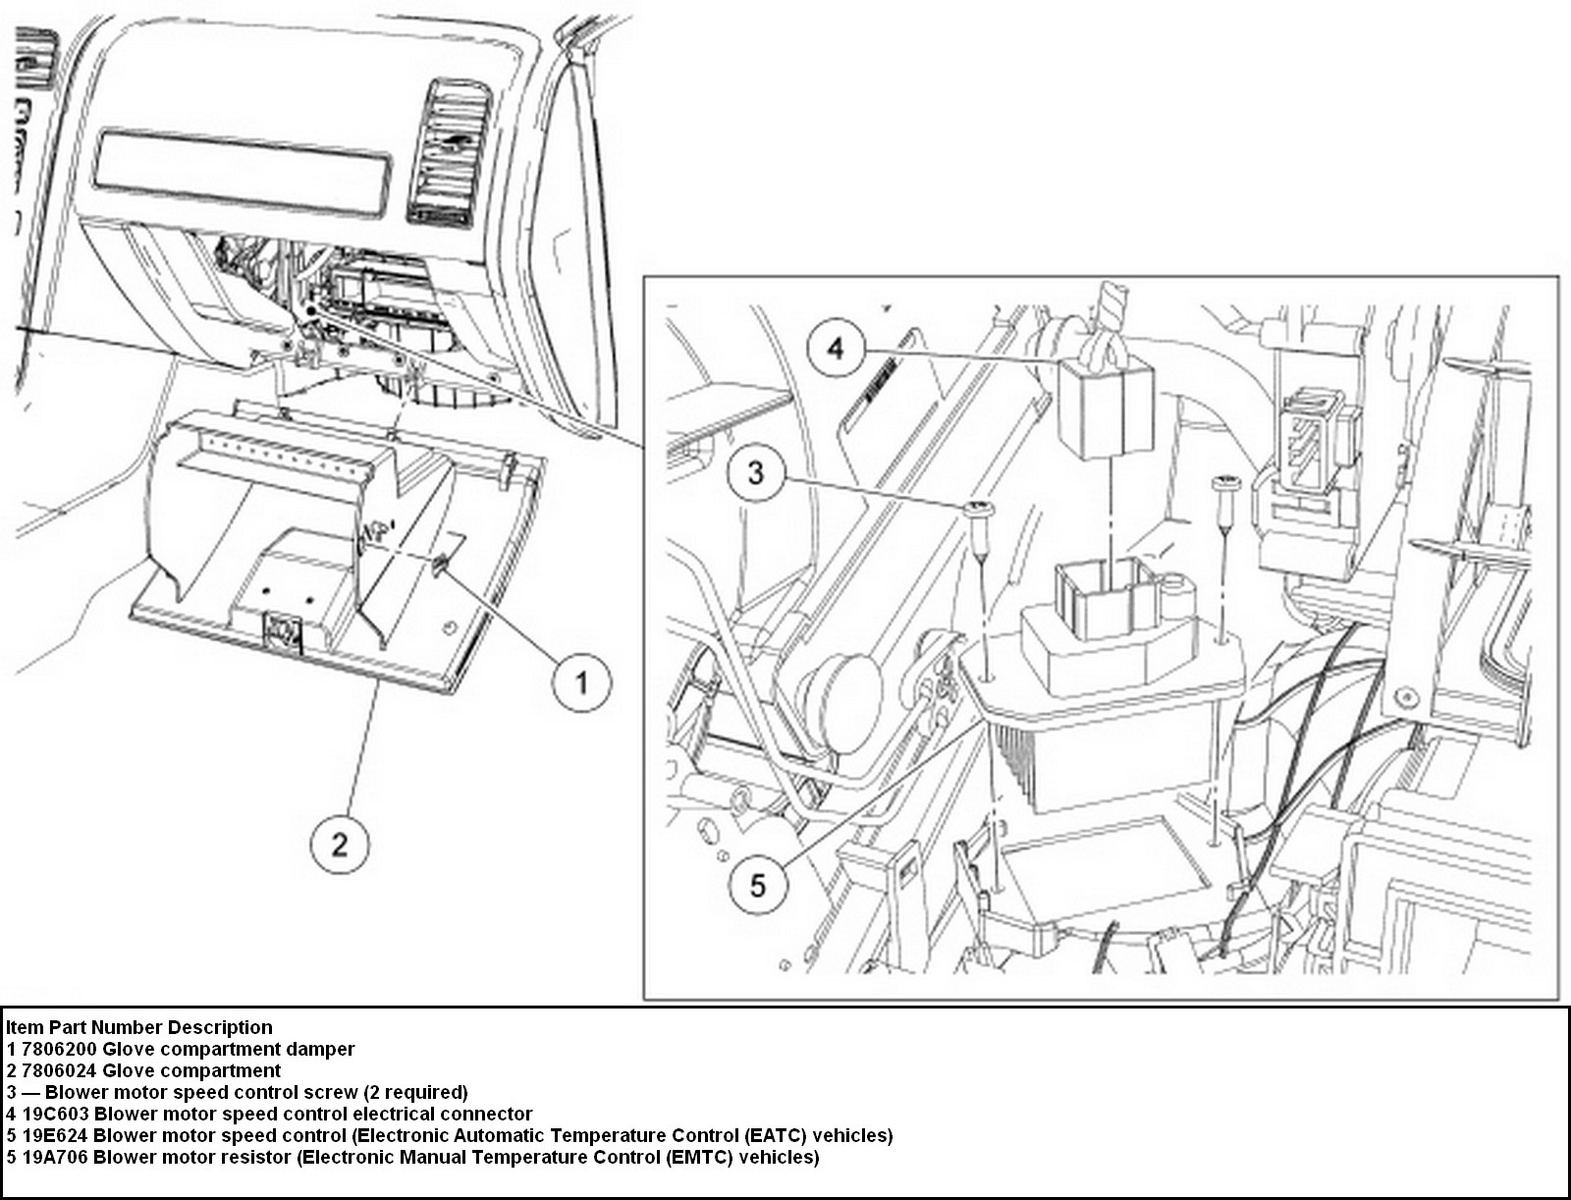 Discussion T24957_ds624347 on 2008 Nissan Sentra Fuel Filter Location